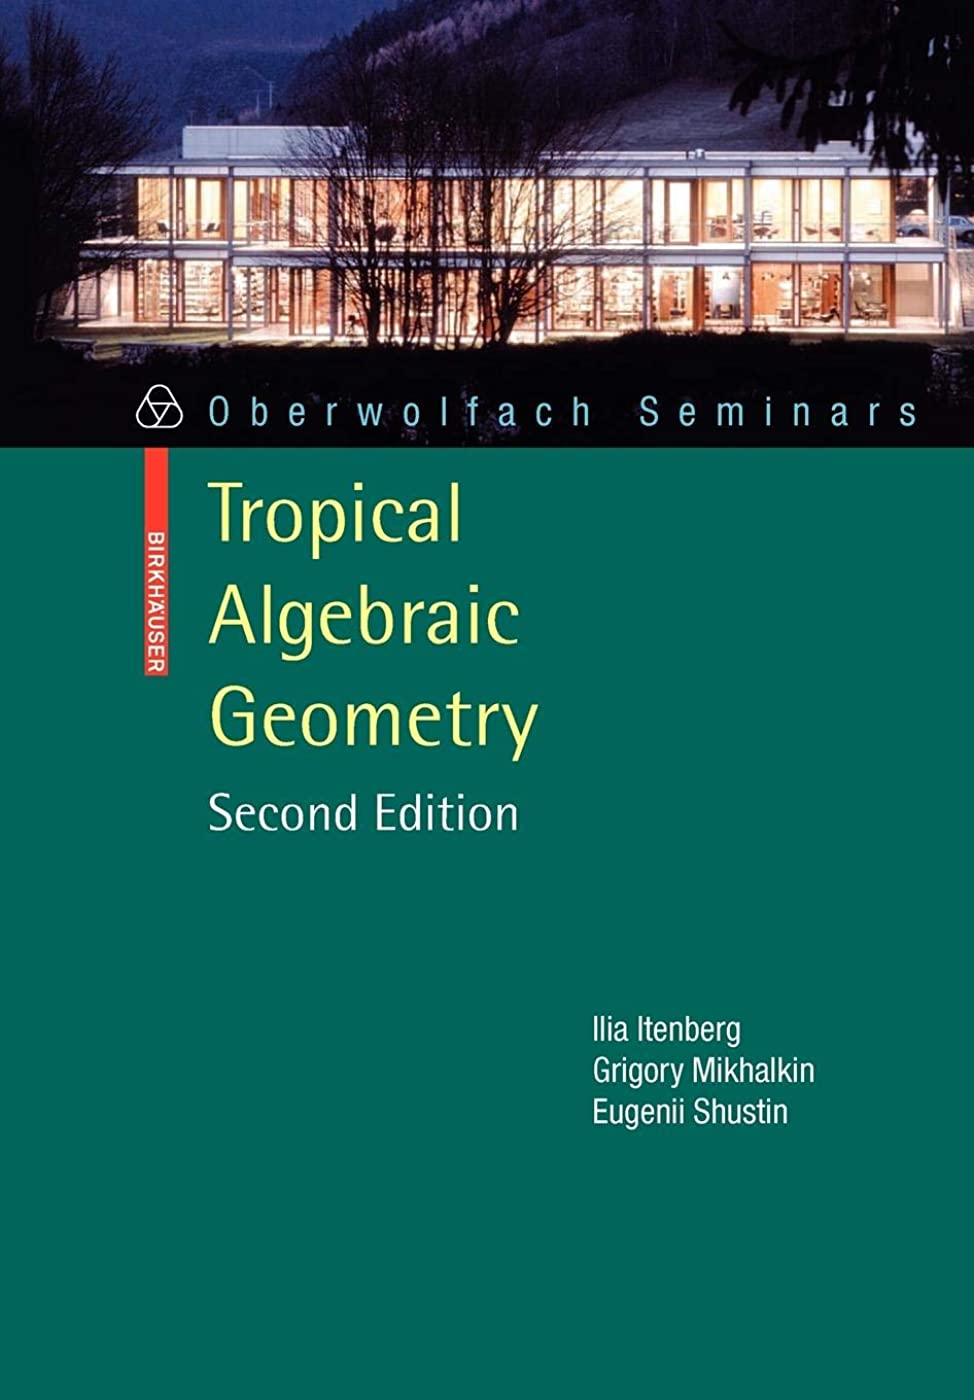 スチールネスト教えTropical Algebraic Geometry (Oberwolfach Seminars)